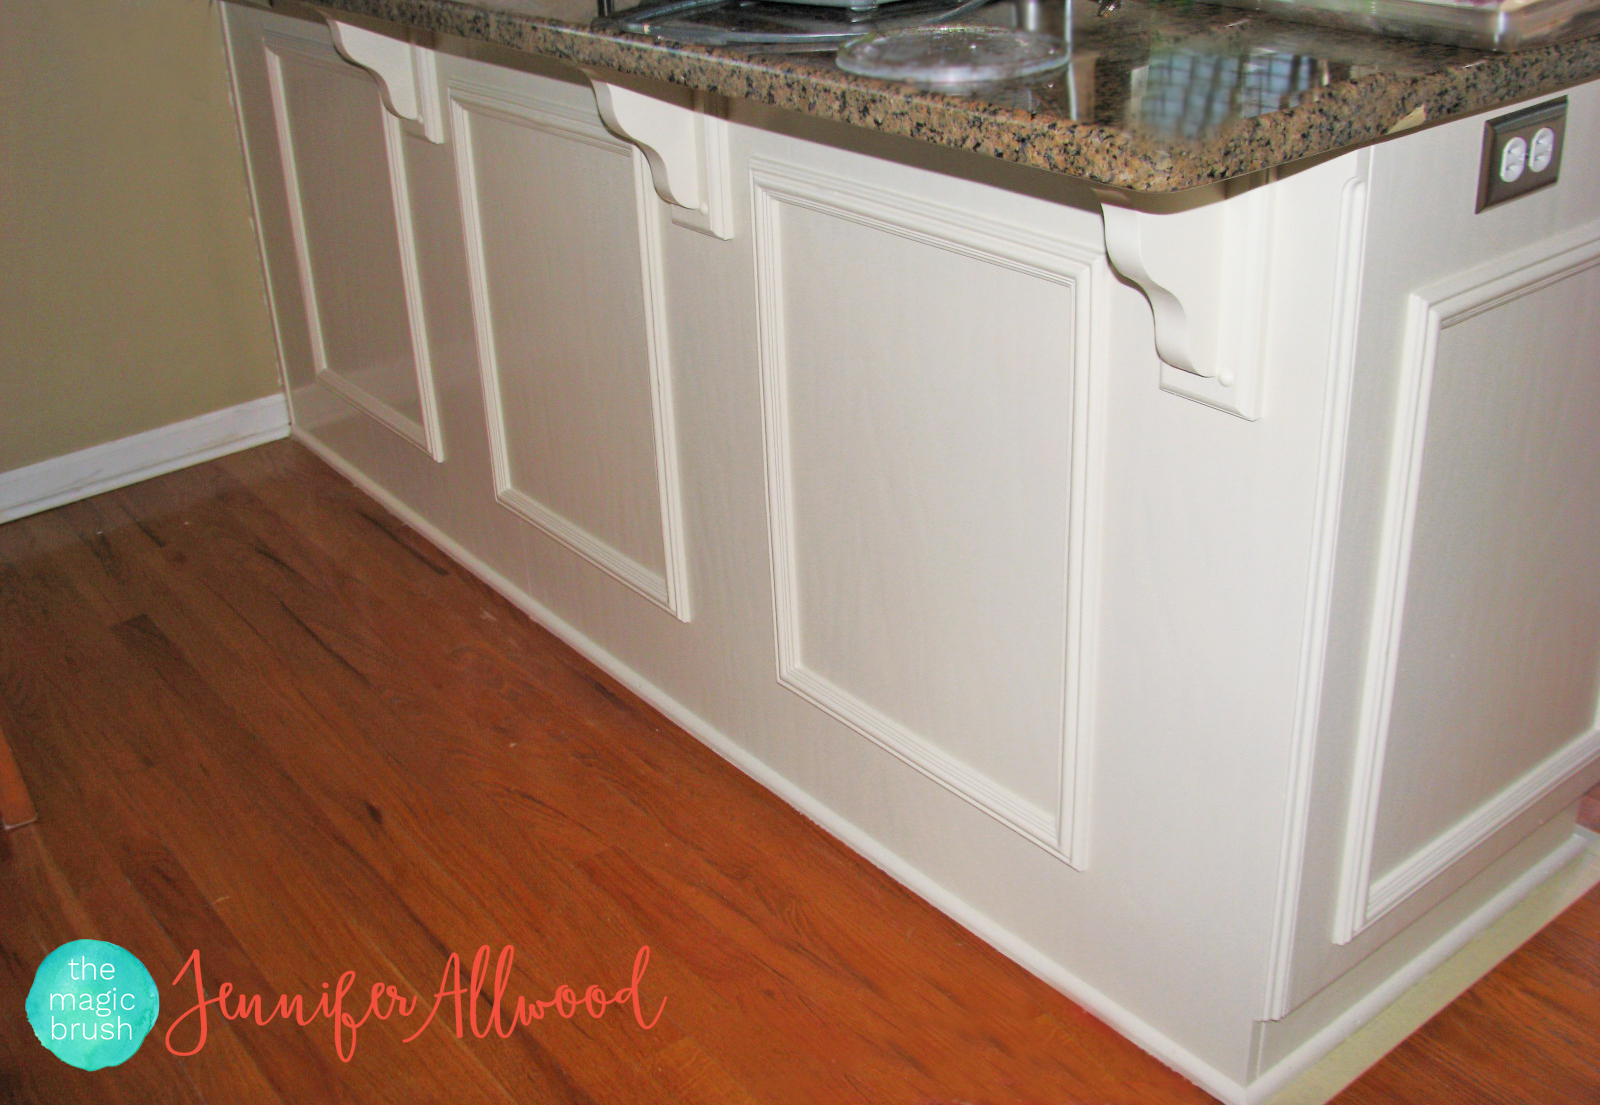 How to add panels to cabinet doors - Jennifer Allwood